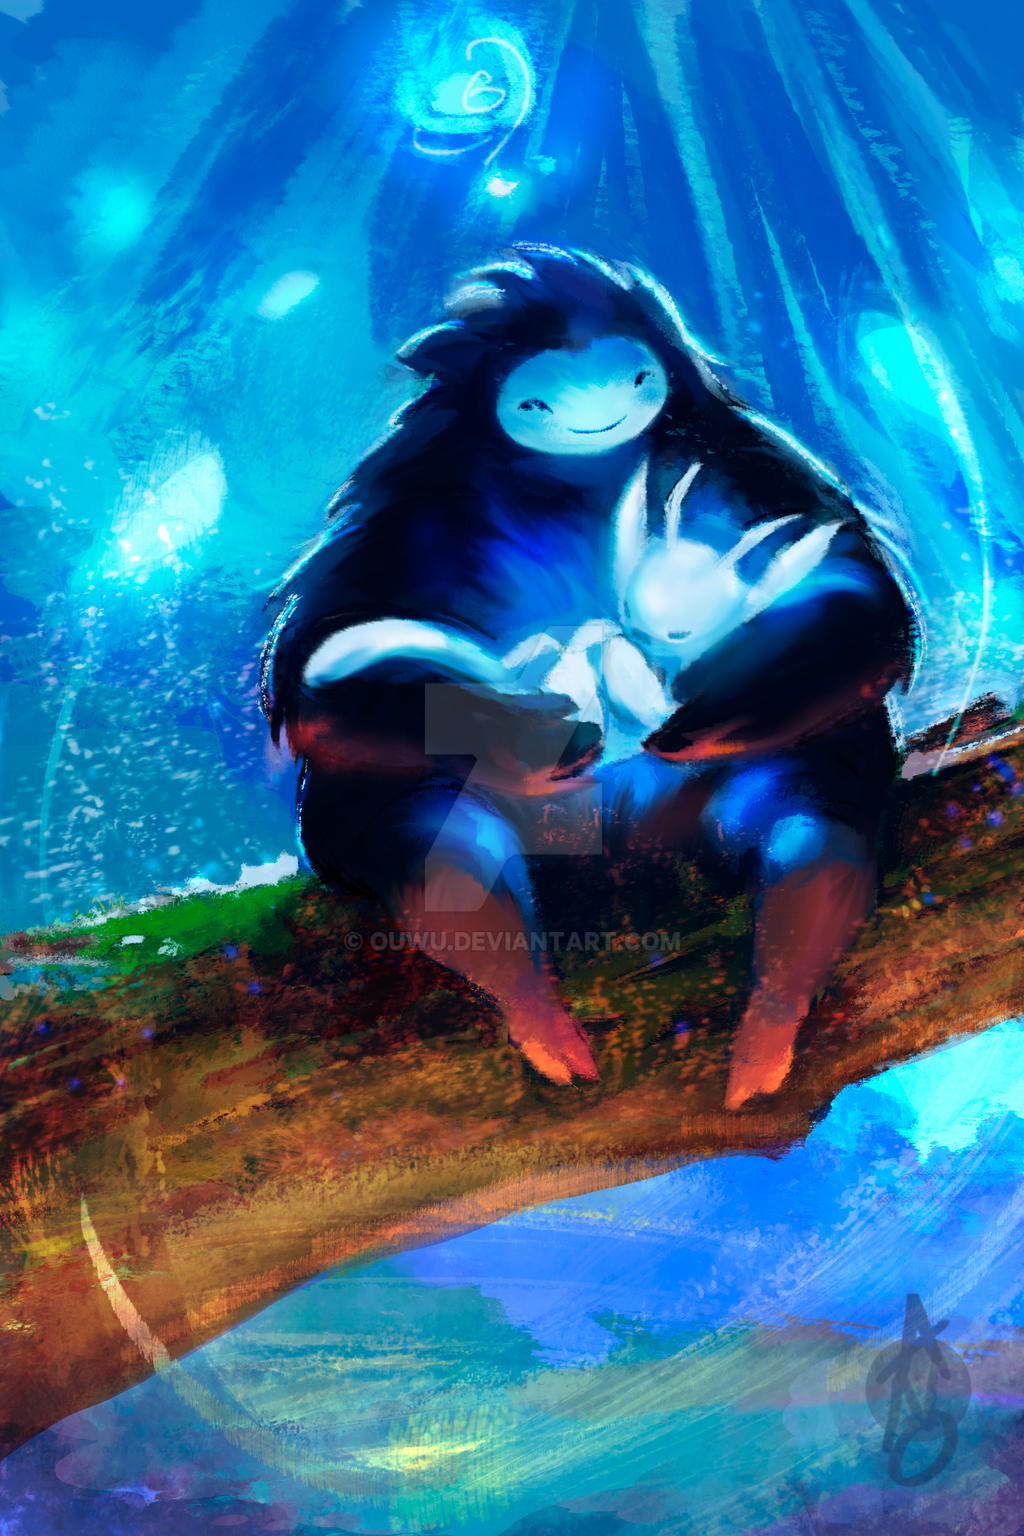 Ori And The Blind Forest by OUWU